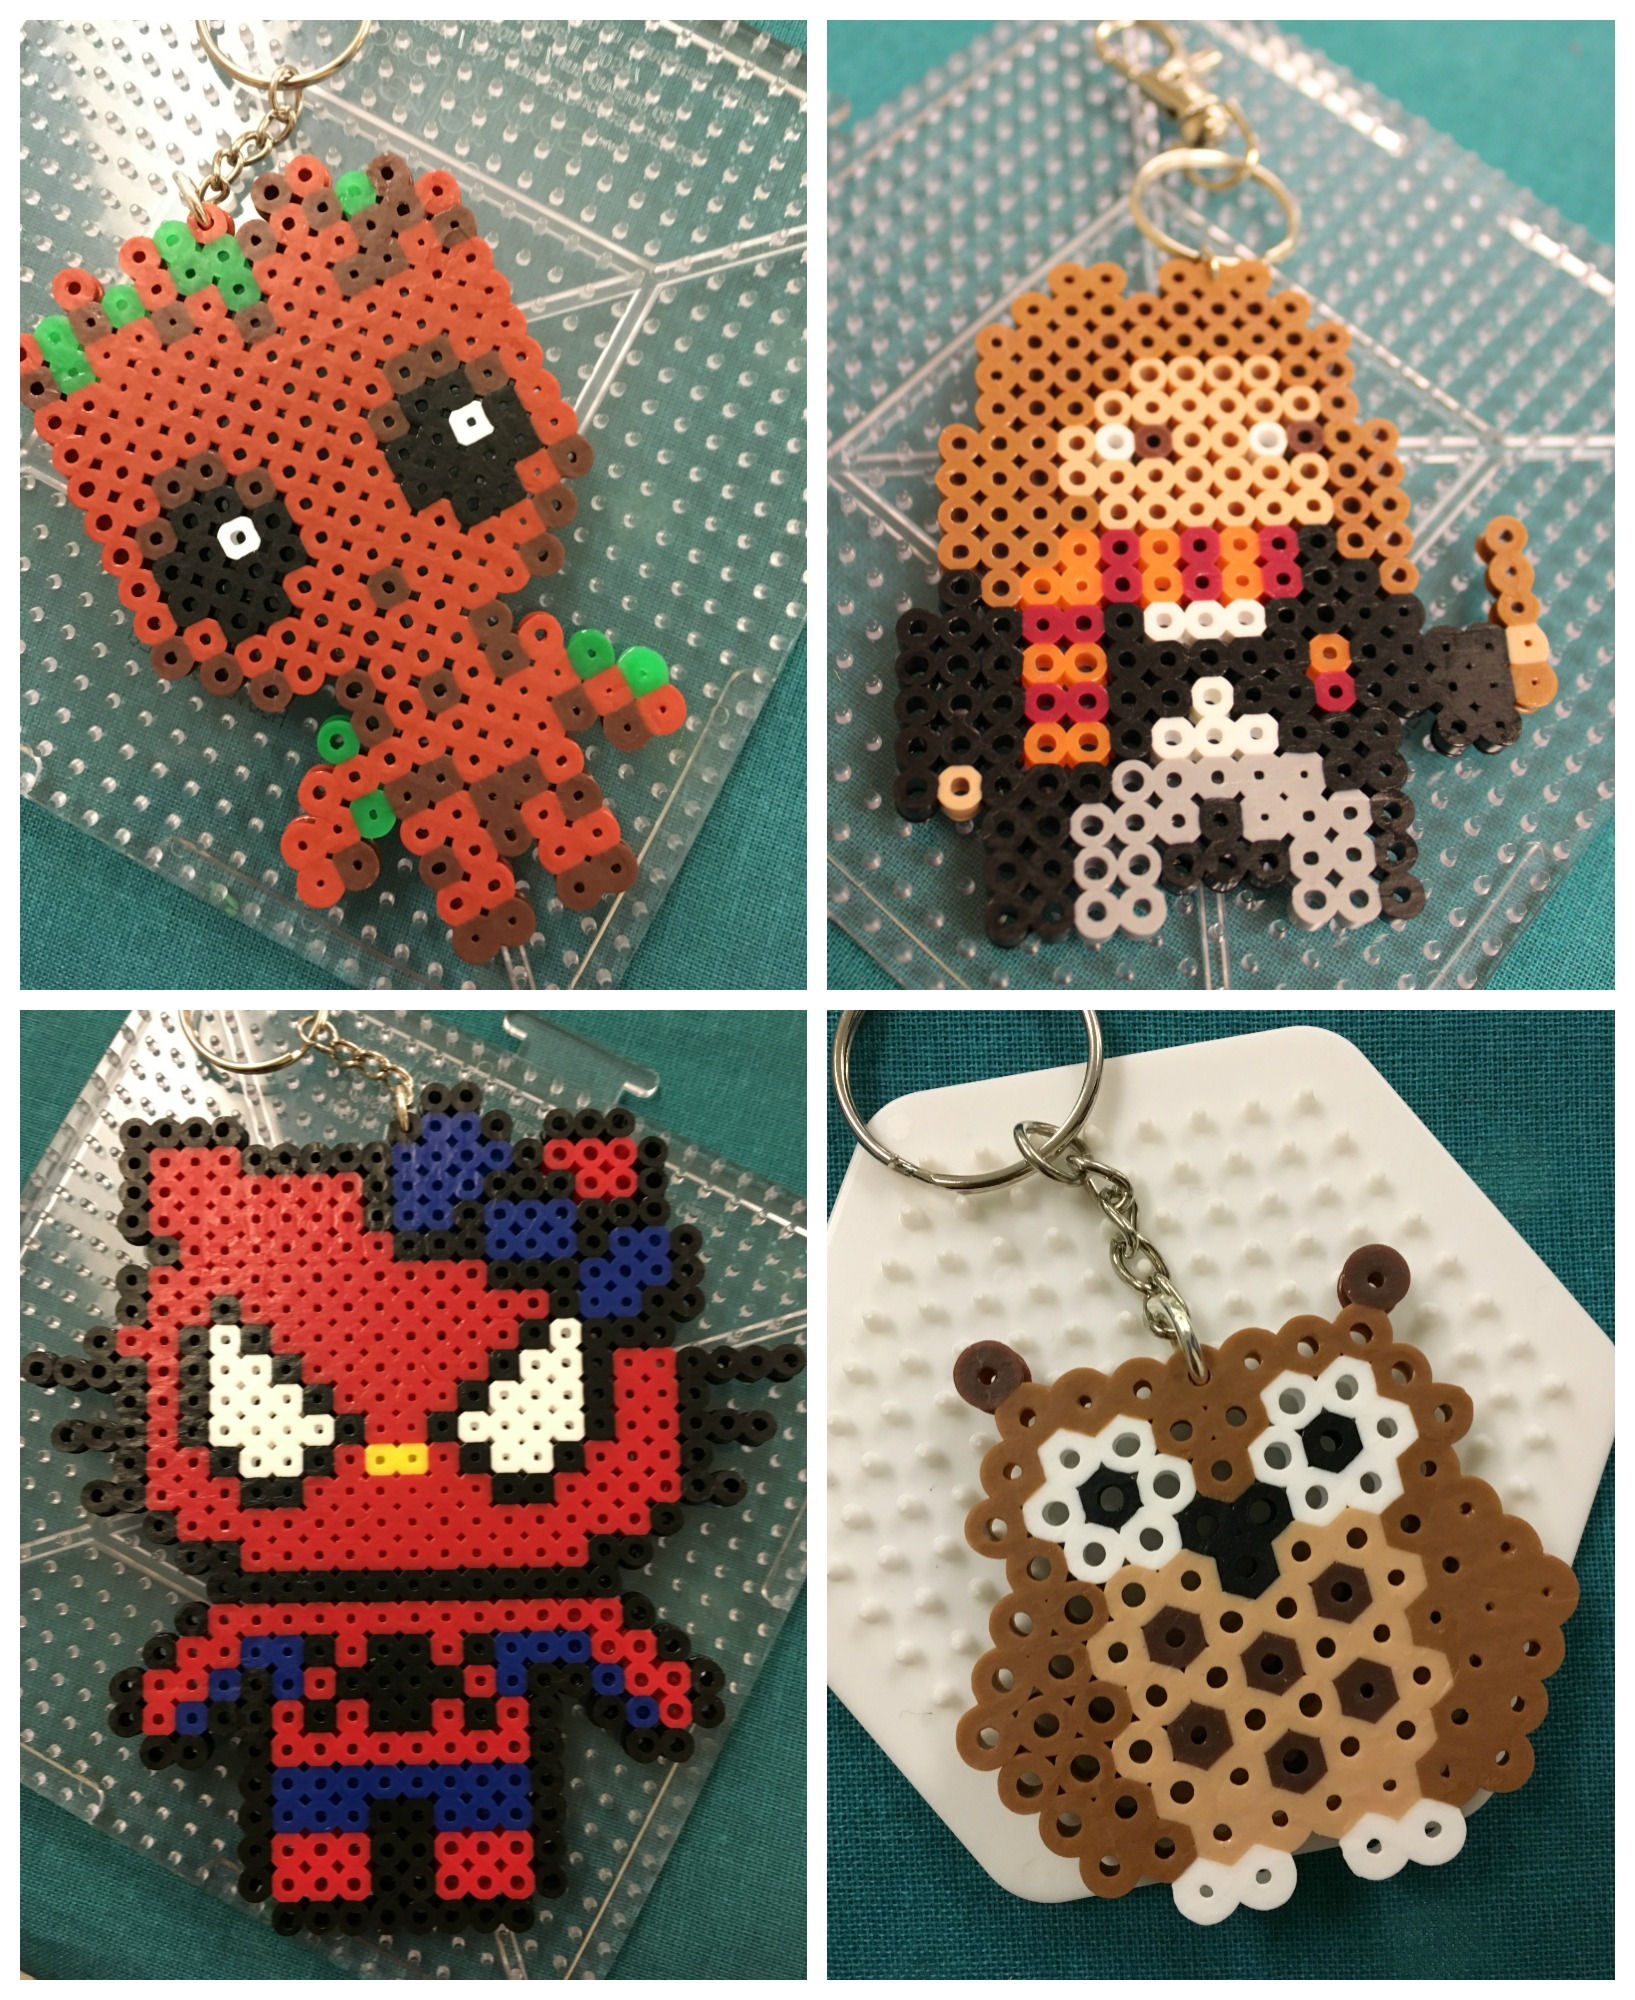 From top let: Baby Groot, Hermoine with wand, owl key chain, Spider-Man-Hello Kitty